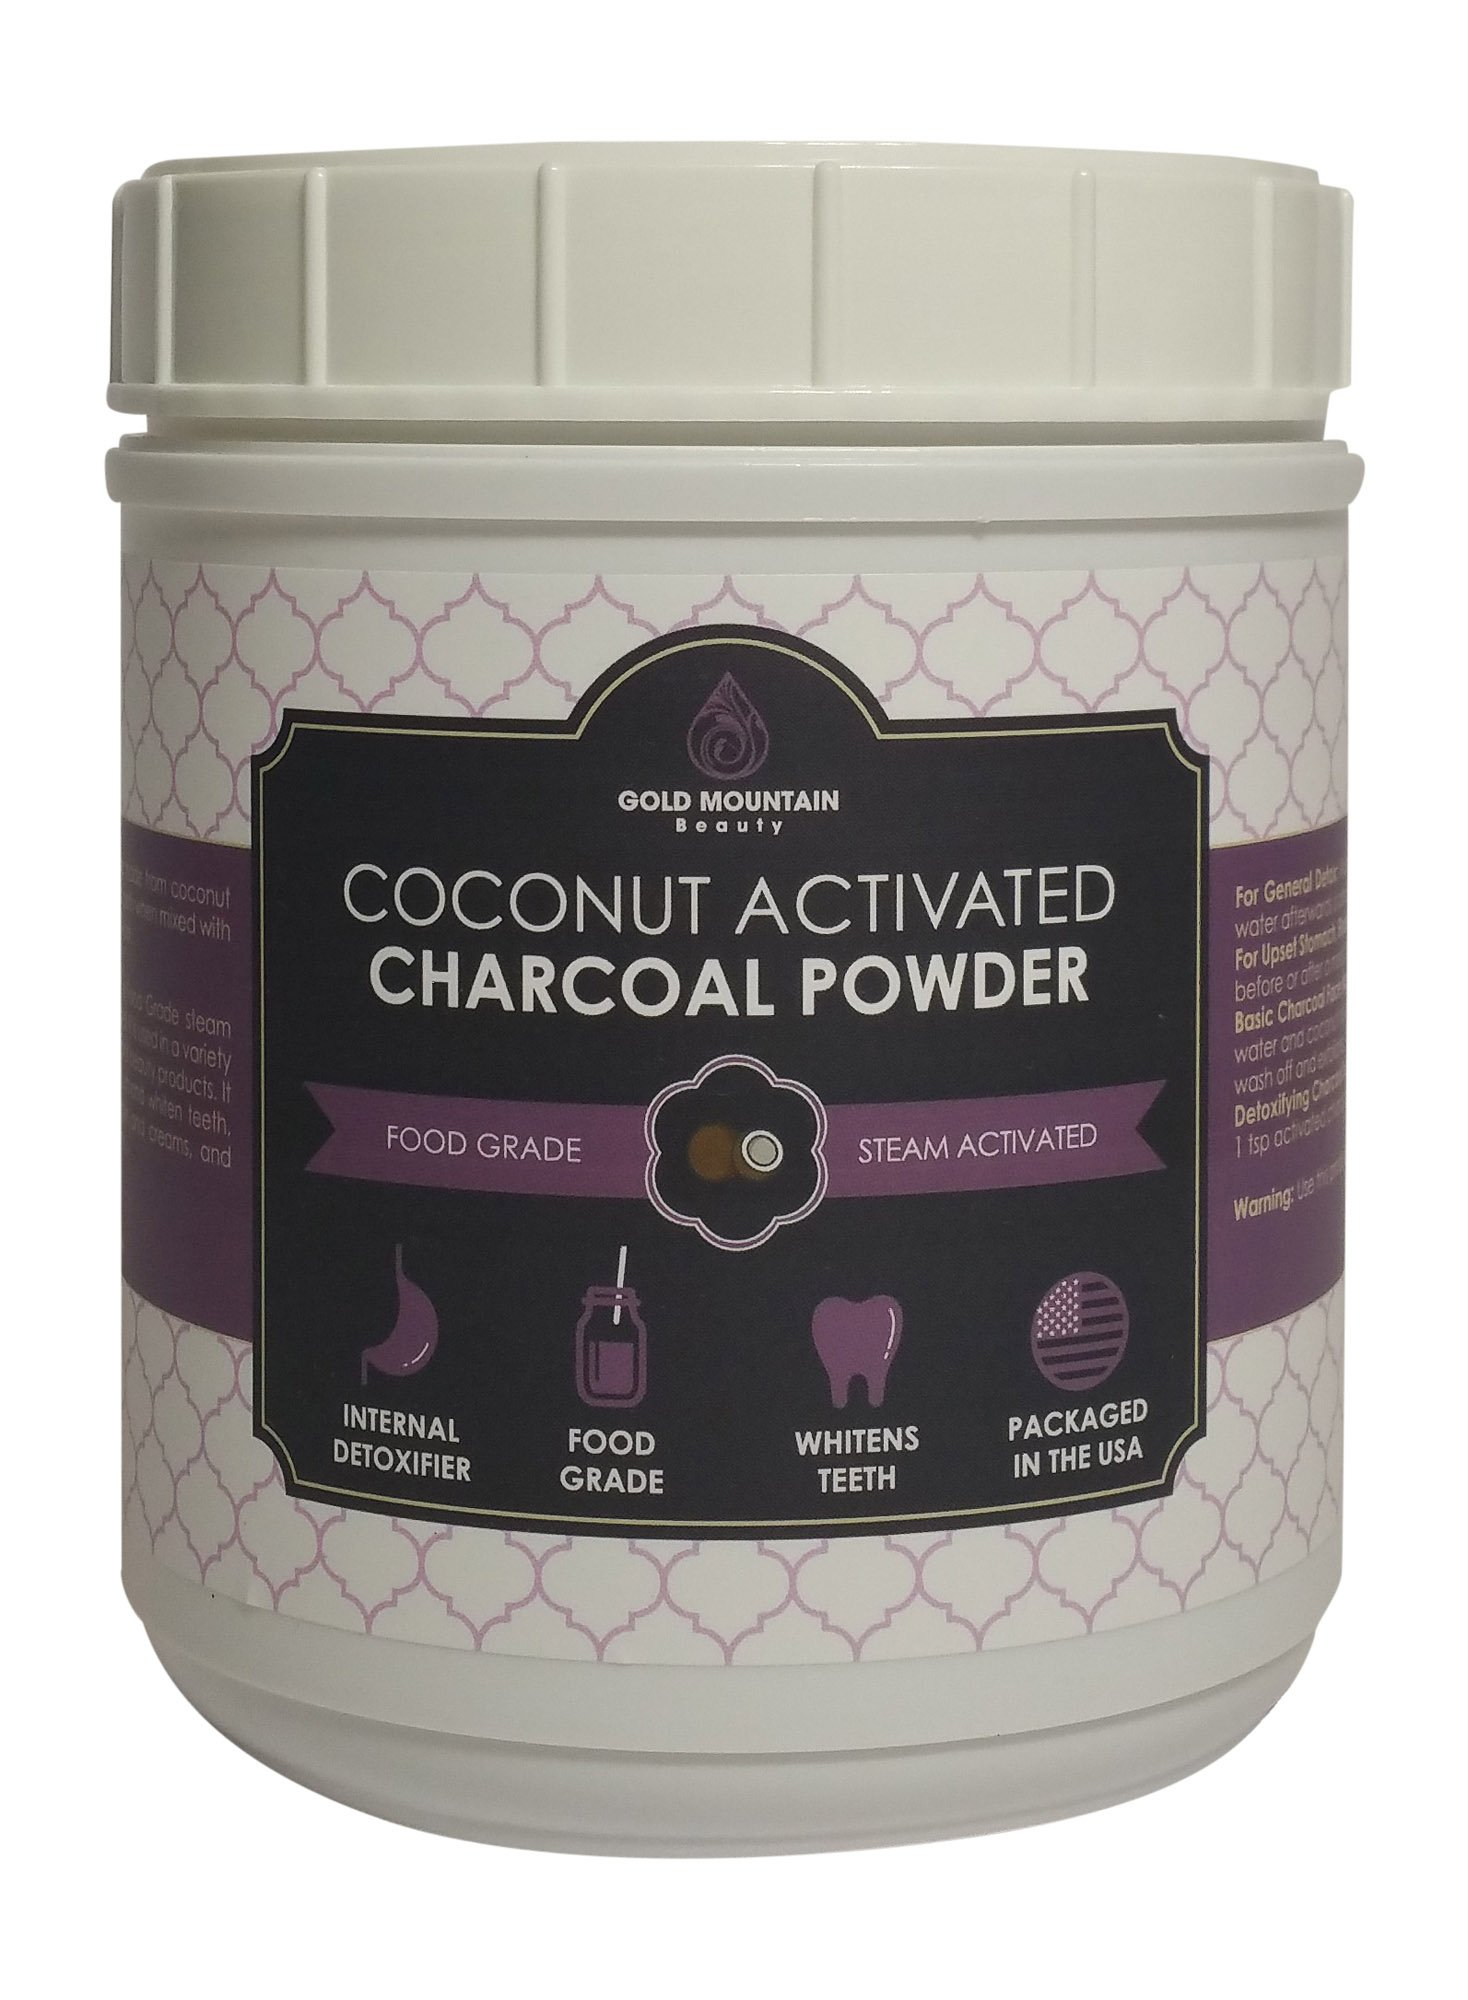 Coconut Activated Charcoal Powder, Detoxifies Better Than Hardwood. A Premium Food Grade with Neutral pH, High Adsorption Capacity, and Efficiency (8 oz)